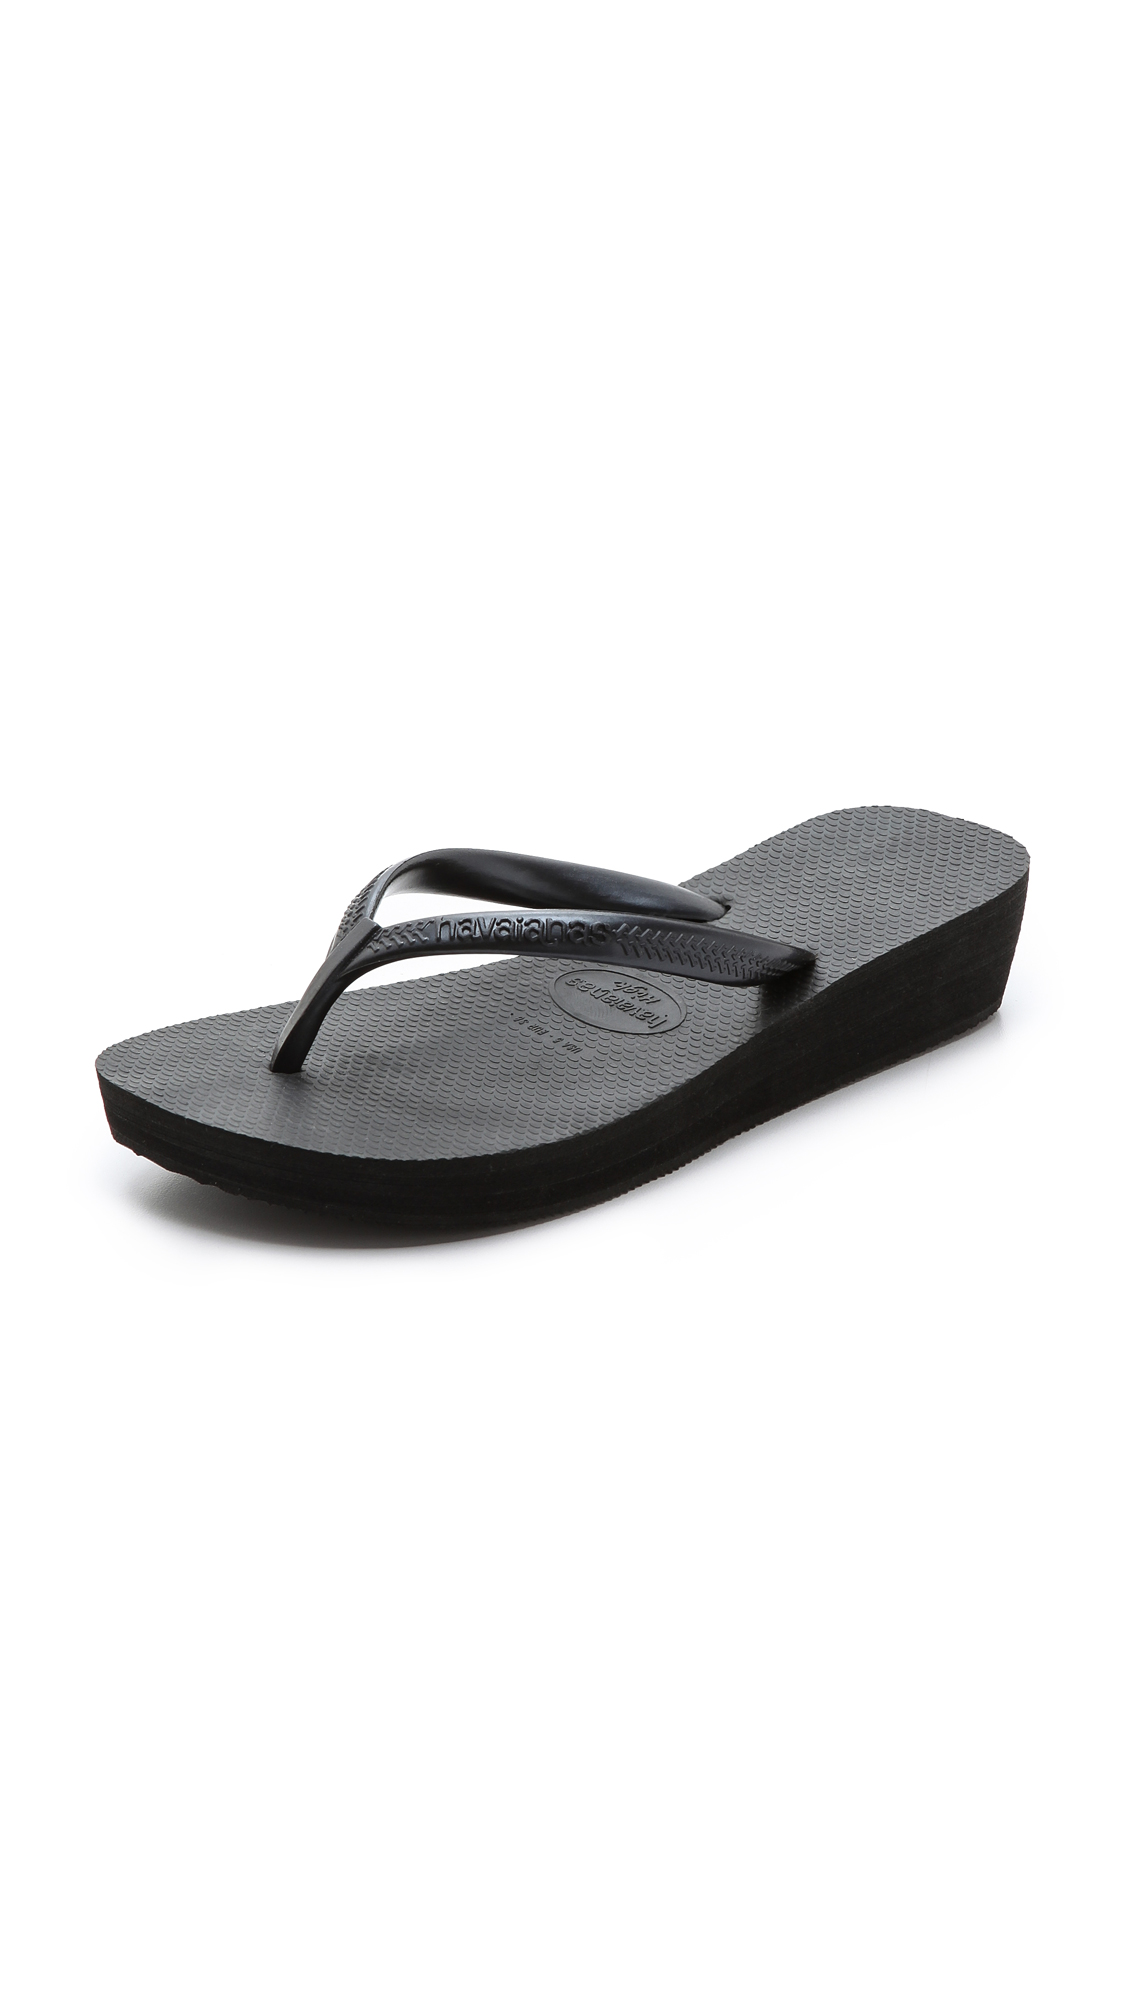 1862891713da0 Havaianas High Light Wedge Flip Flop